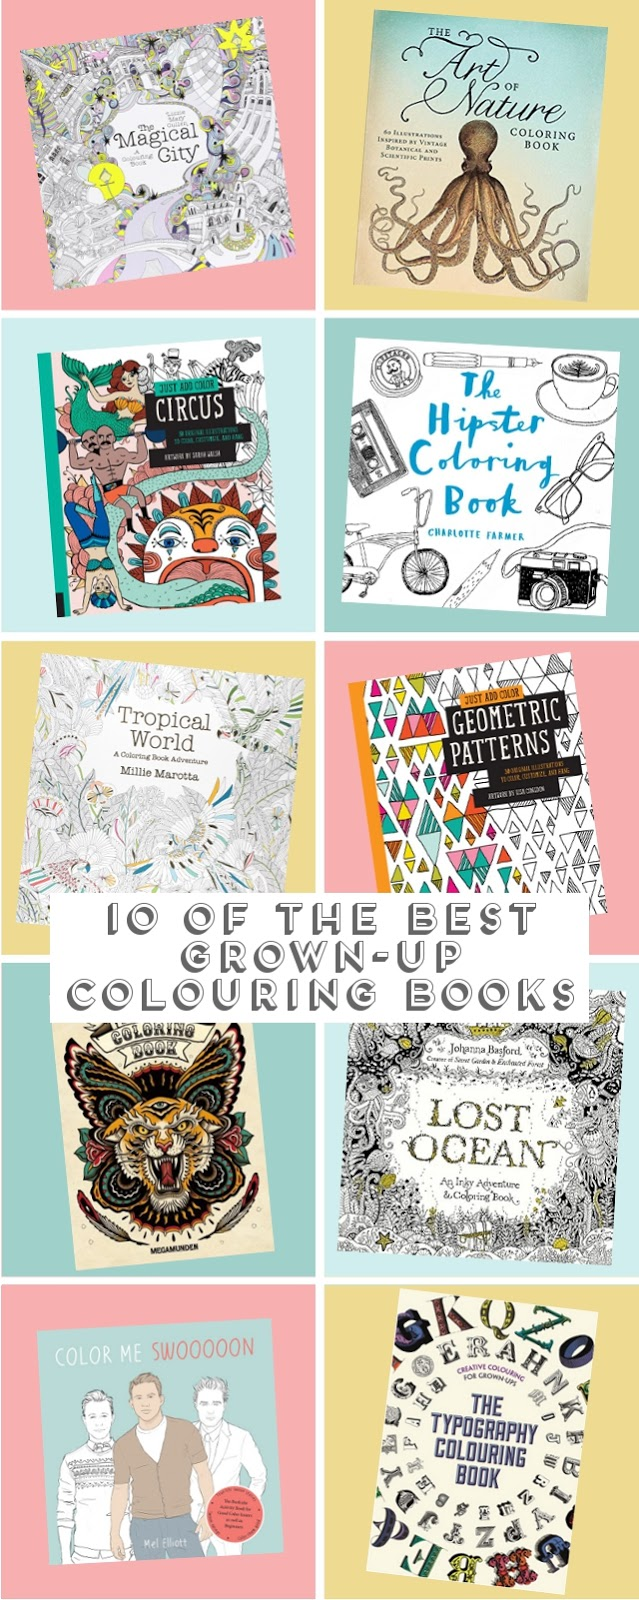 10 Of The Best Grown-Up Colouring Books